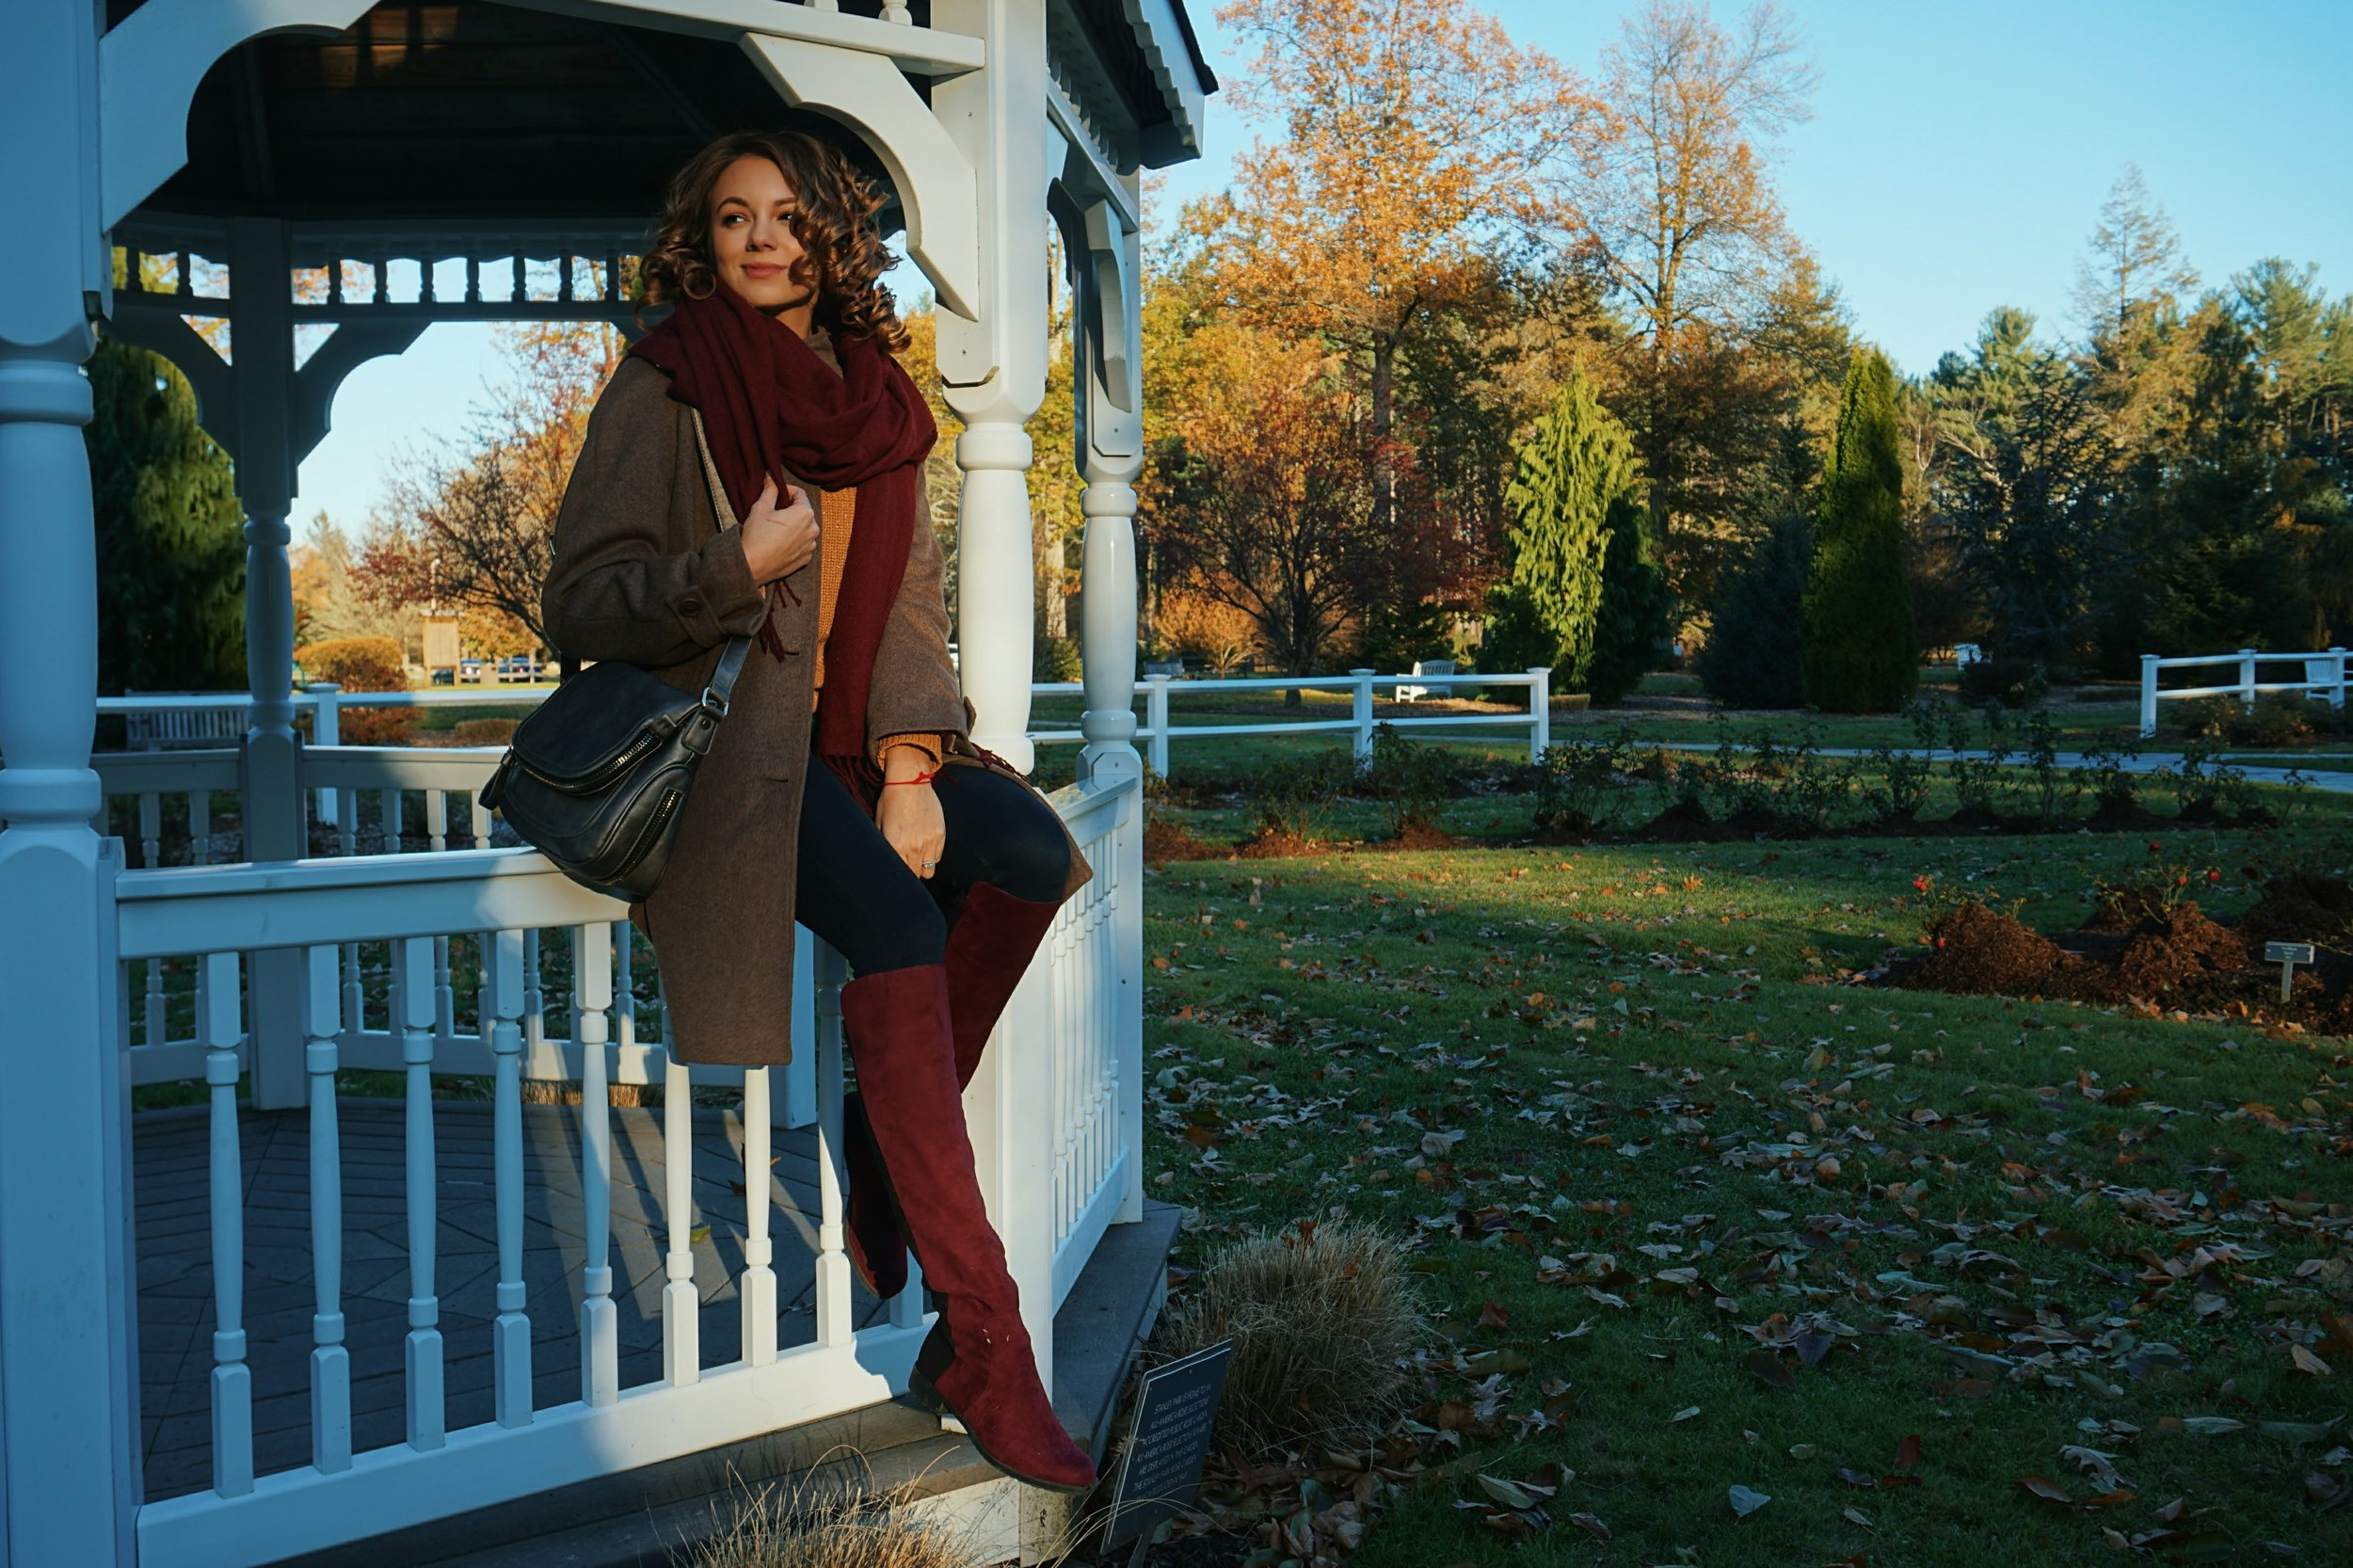 A blogger sittin on the side of the gazebo, wearing a brown coat, maroon boots, maroon scarf, and a gray purse.